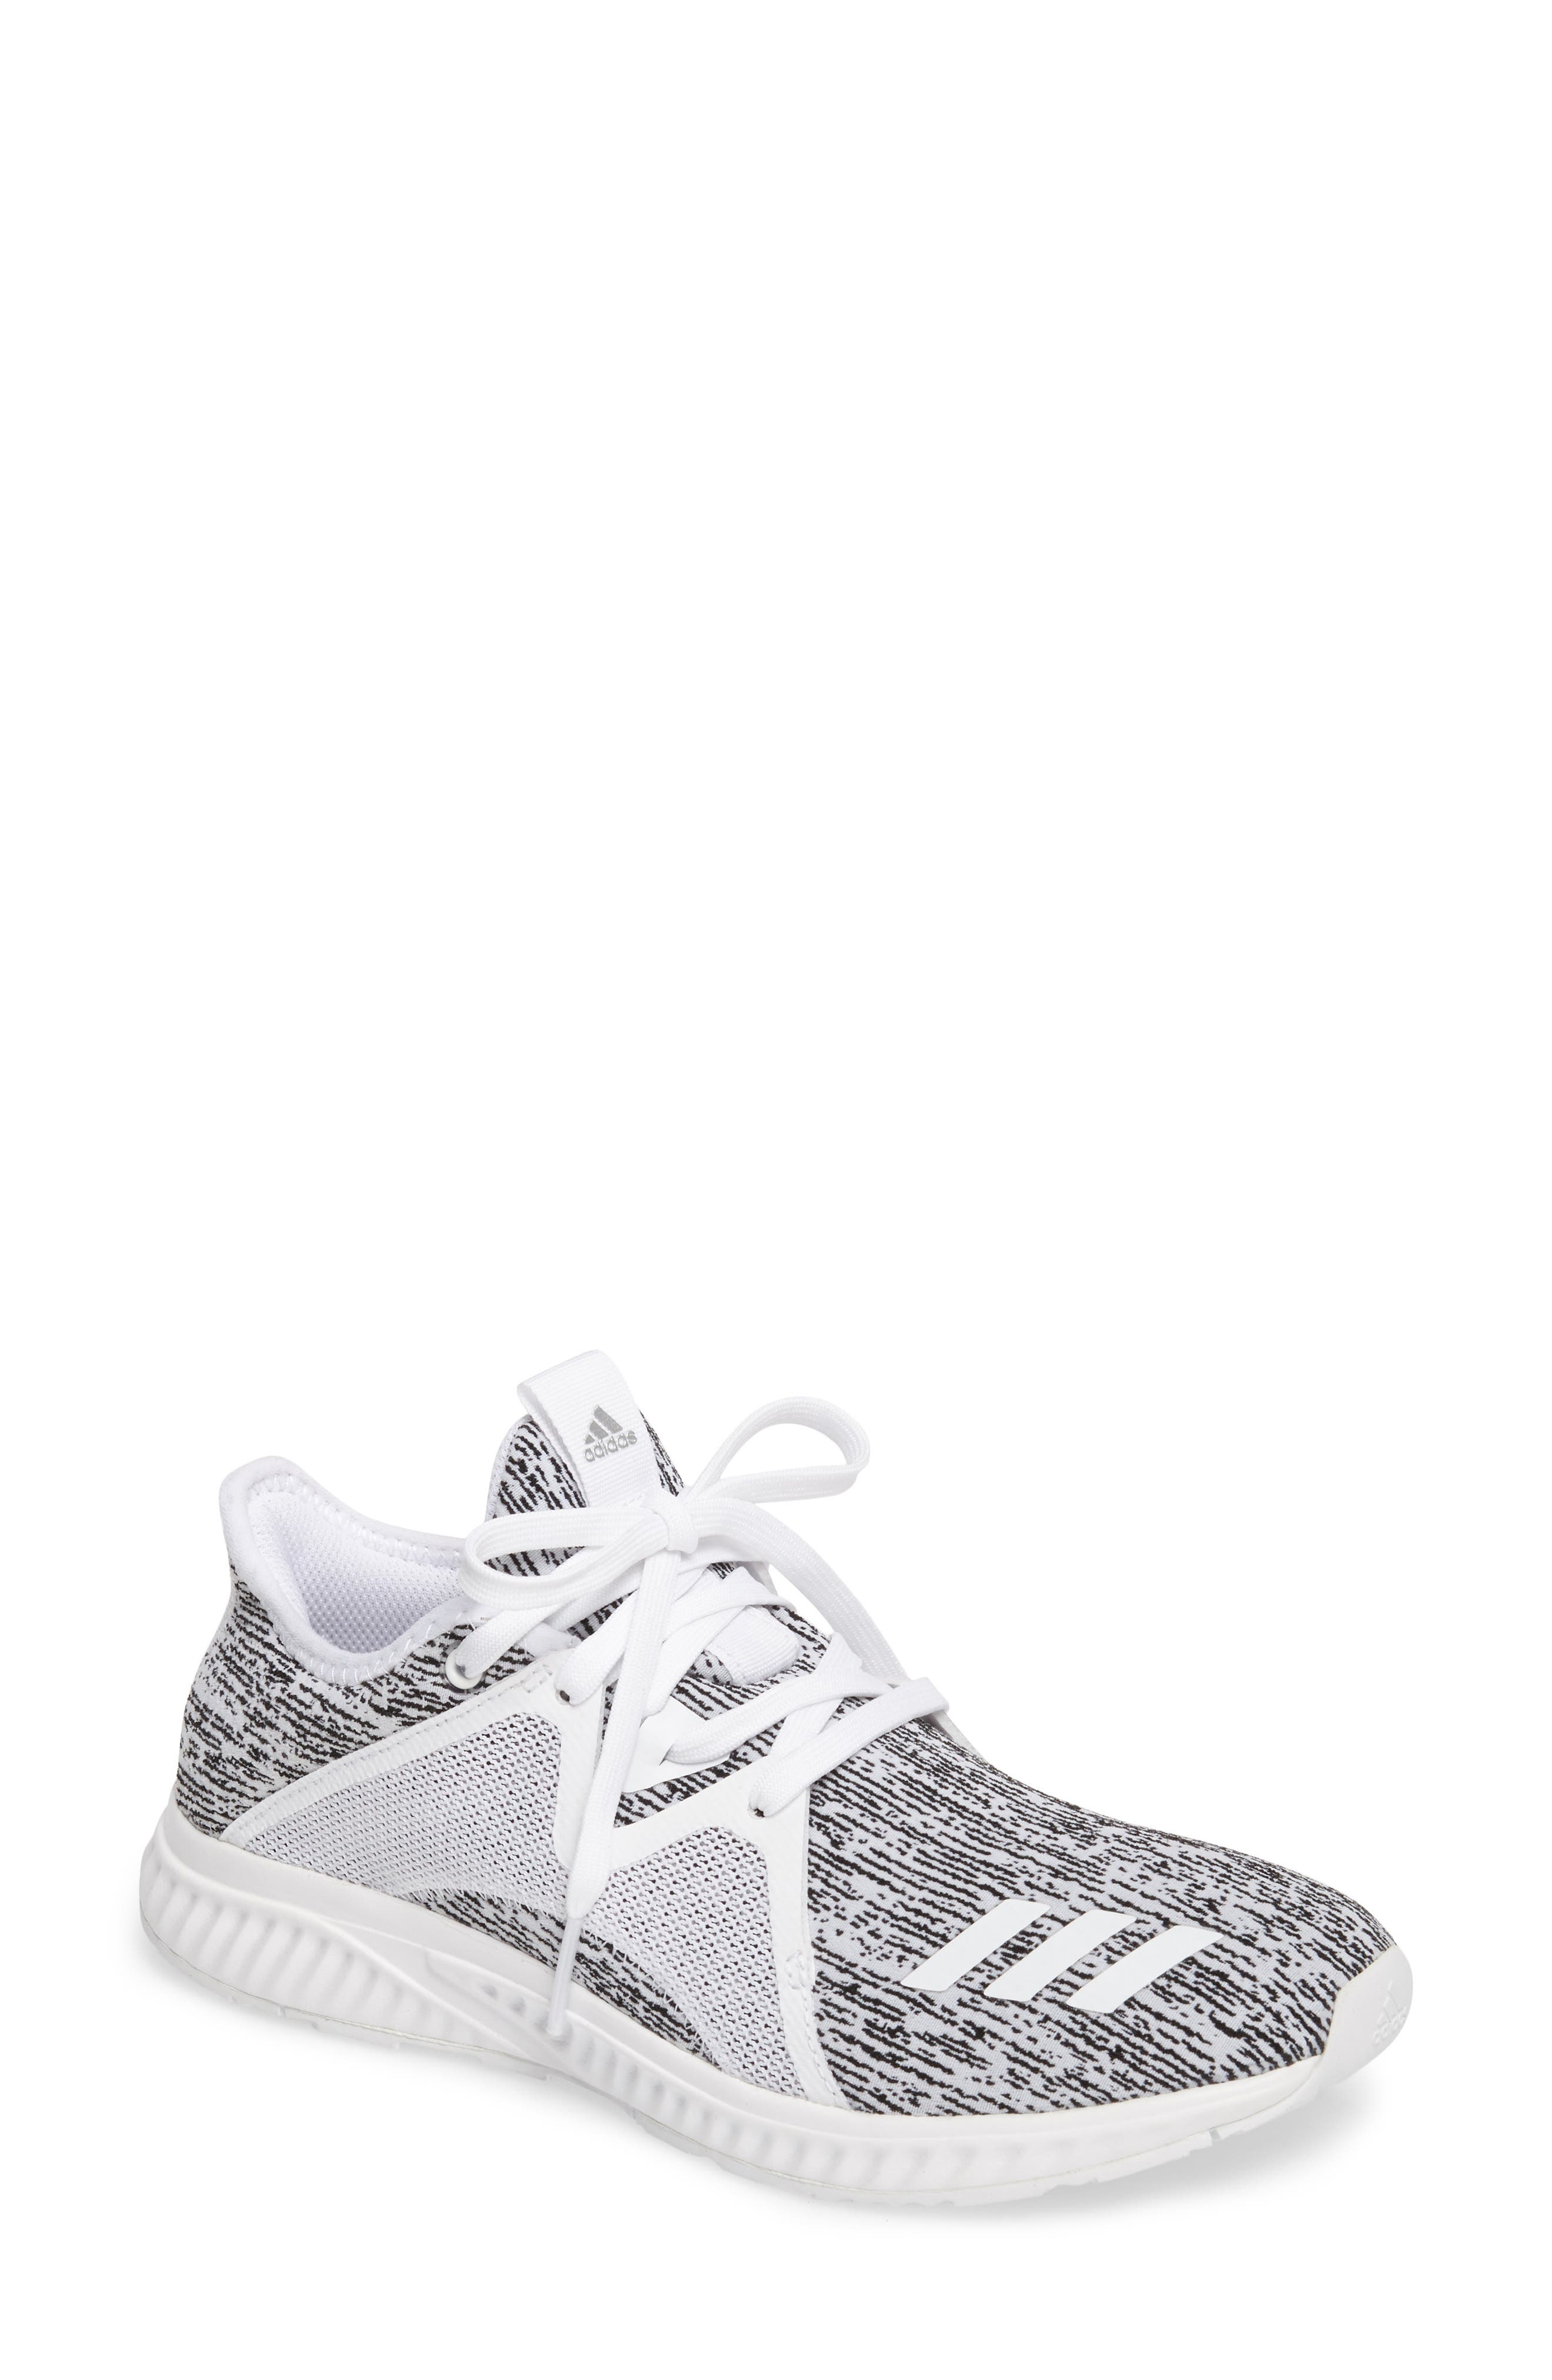 adidas Edge Lux 2.0 Running Shoe (Women)